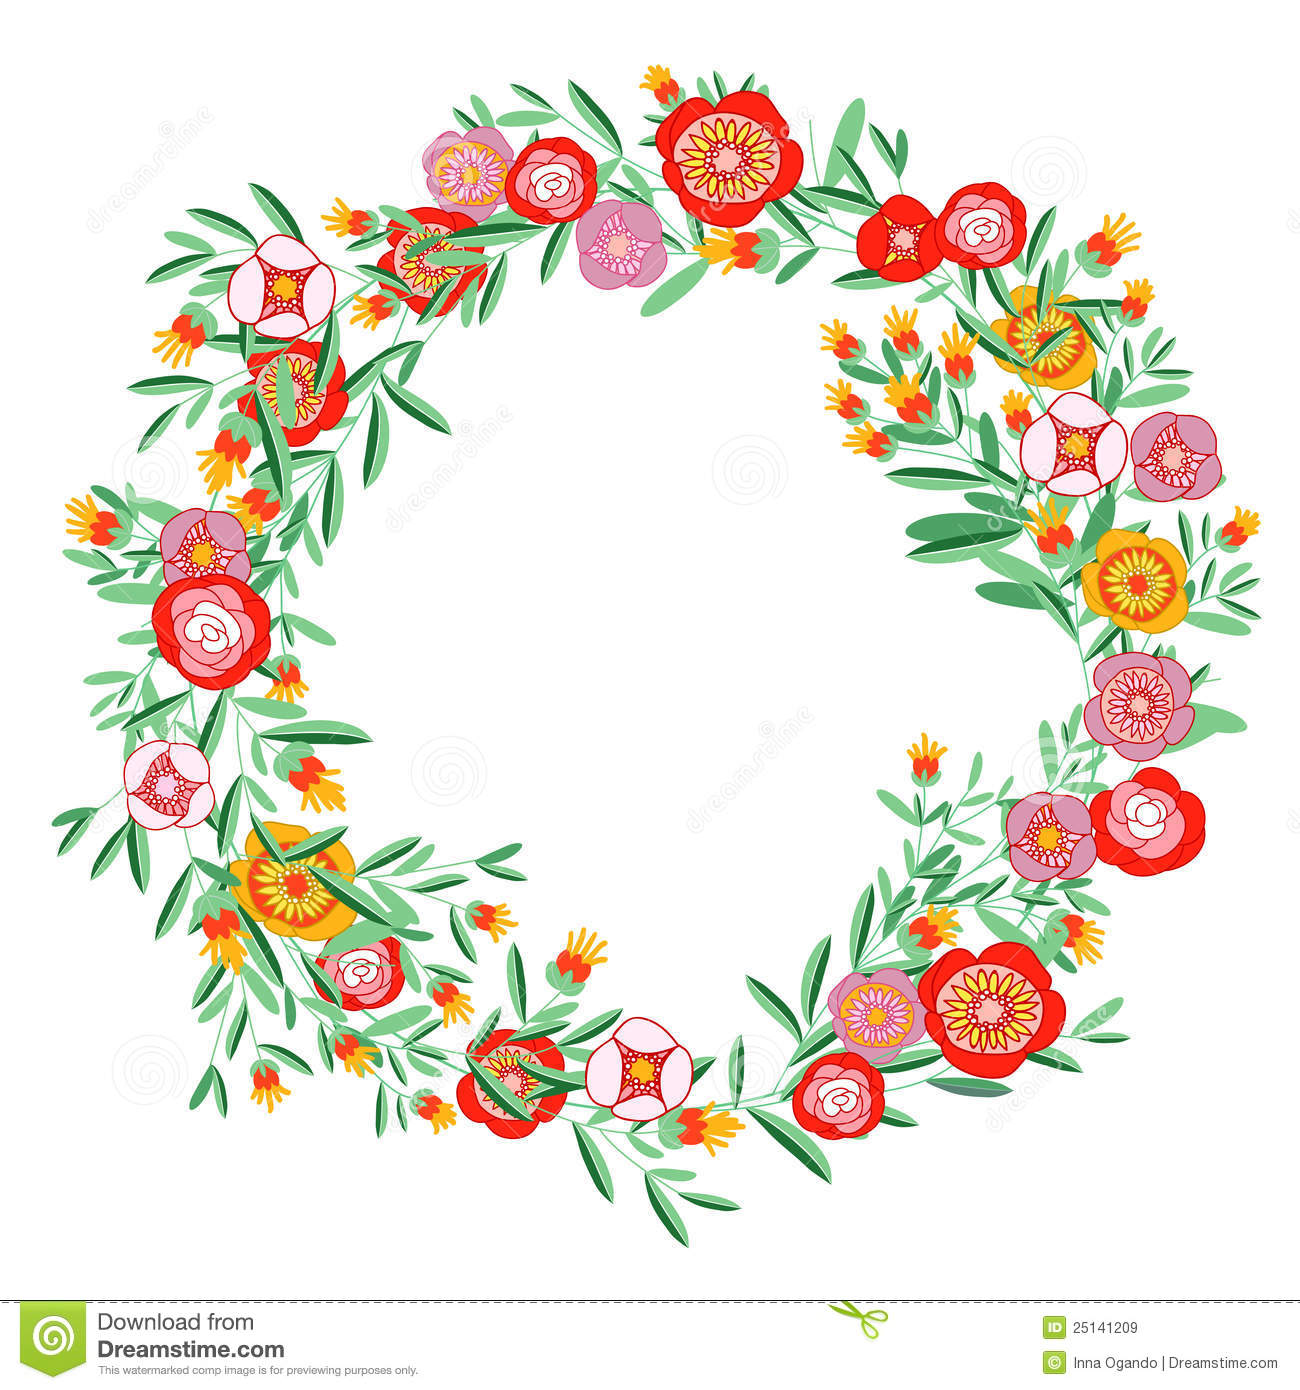 Wreath of flower clipart png image transparent stock Bright floral twig wreath clipart - ClipartFest image transparent stock